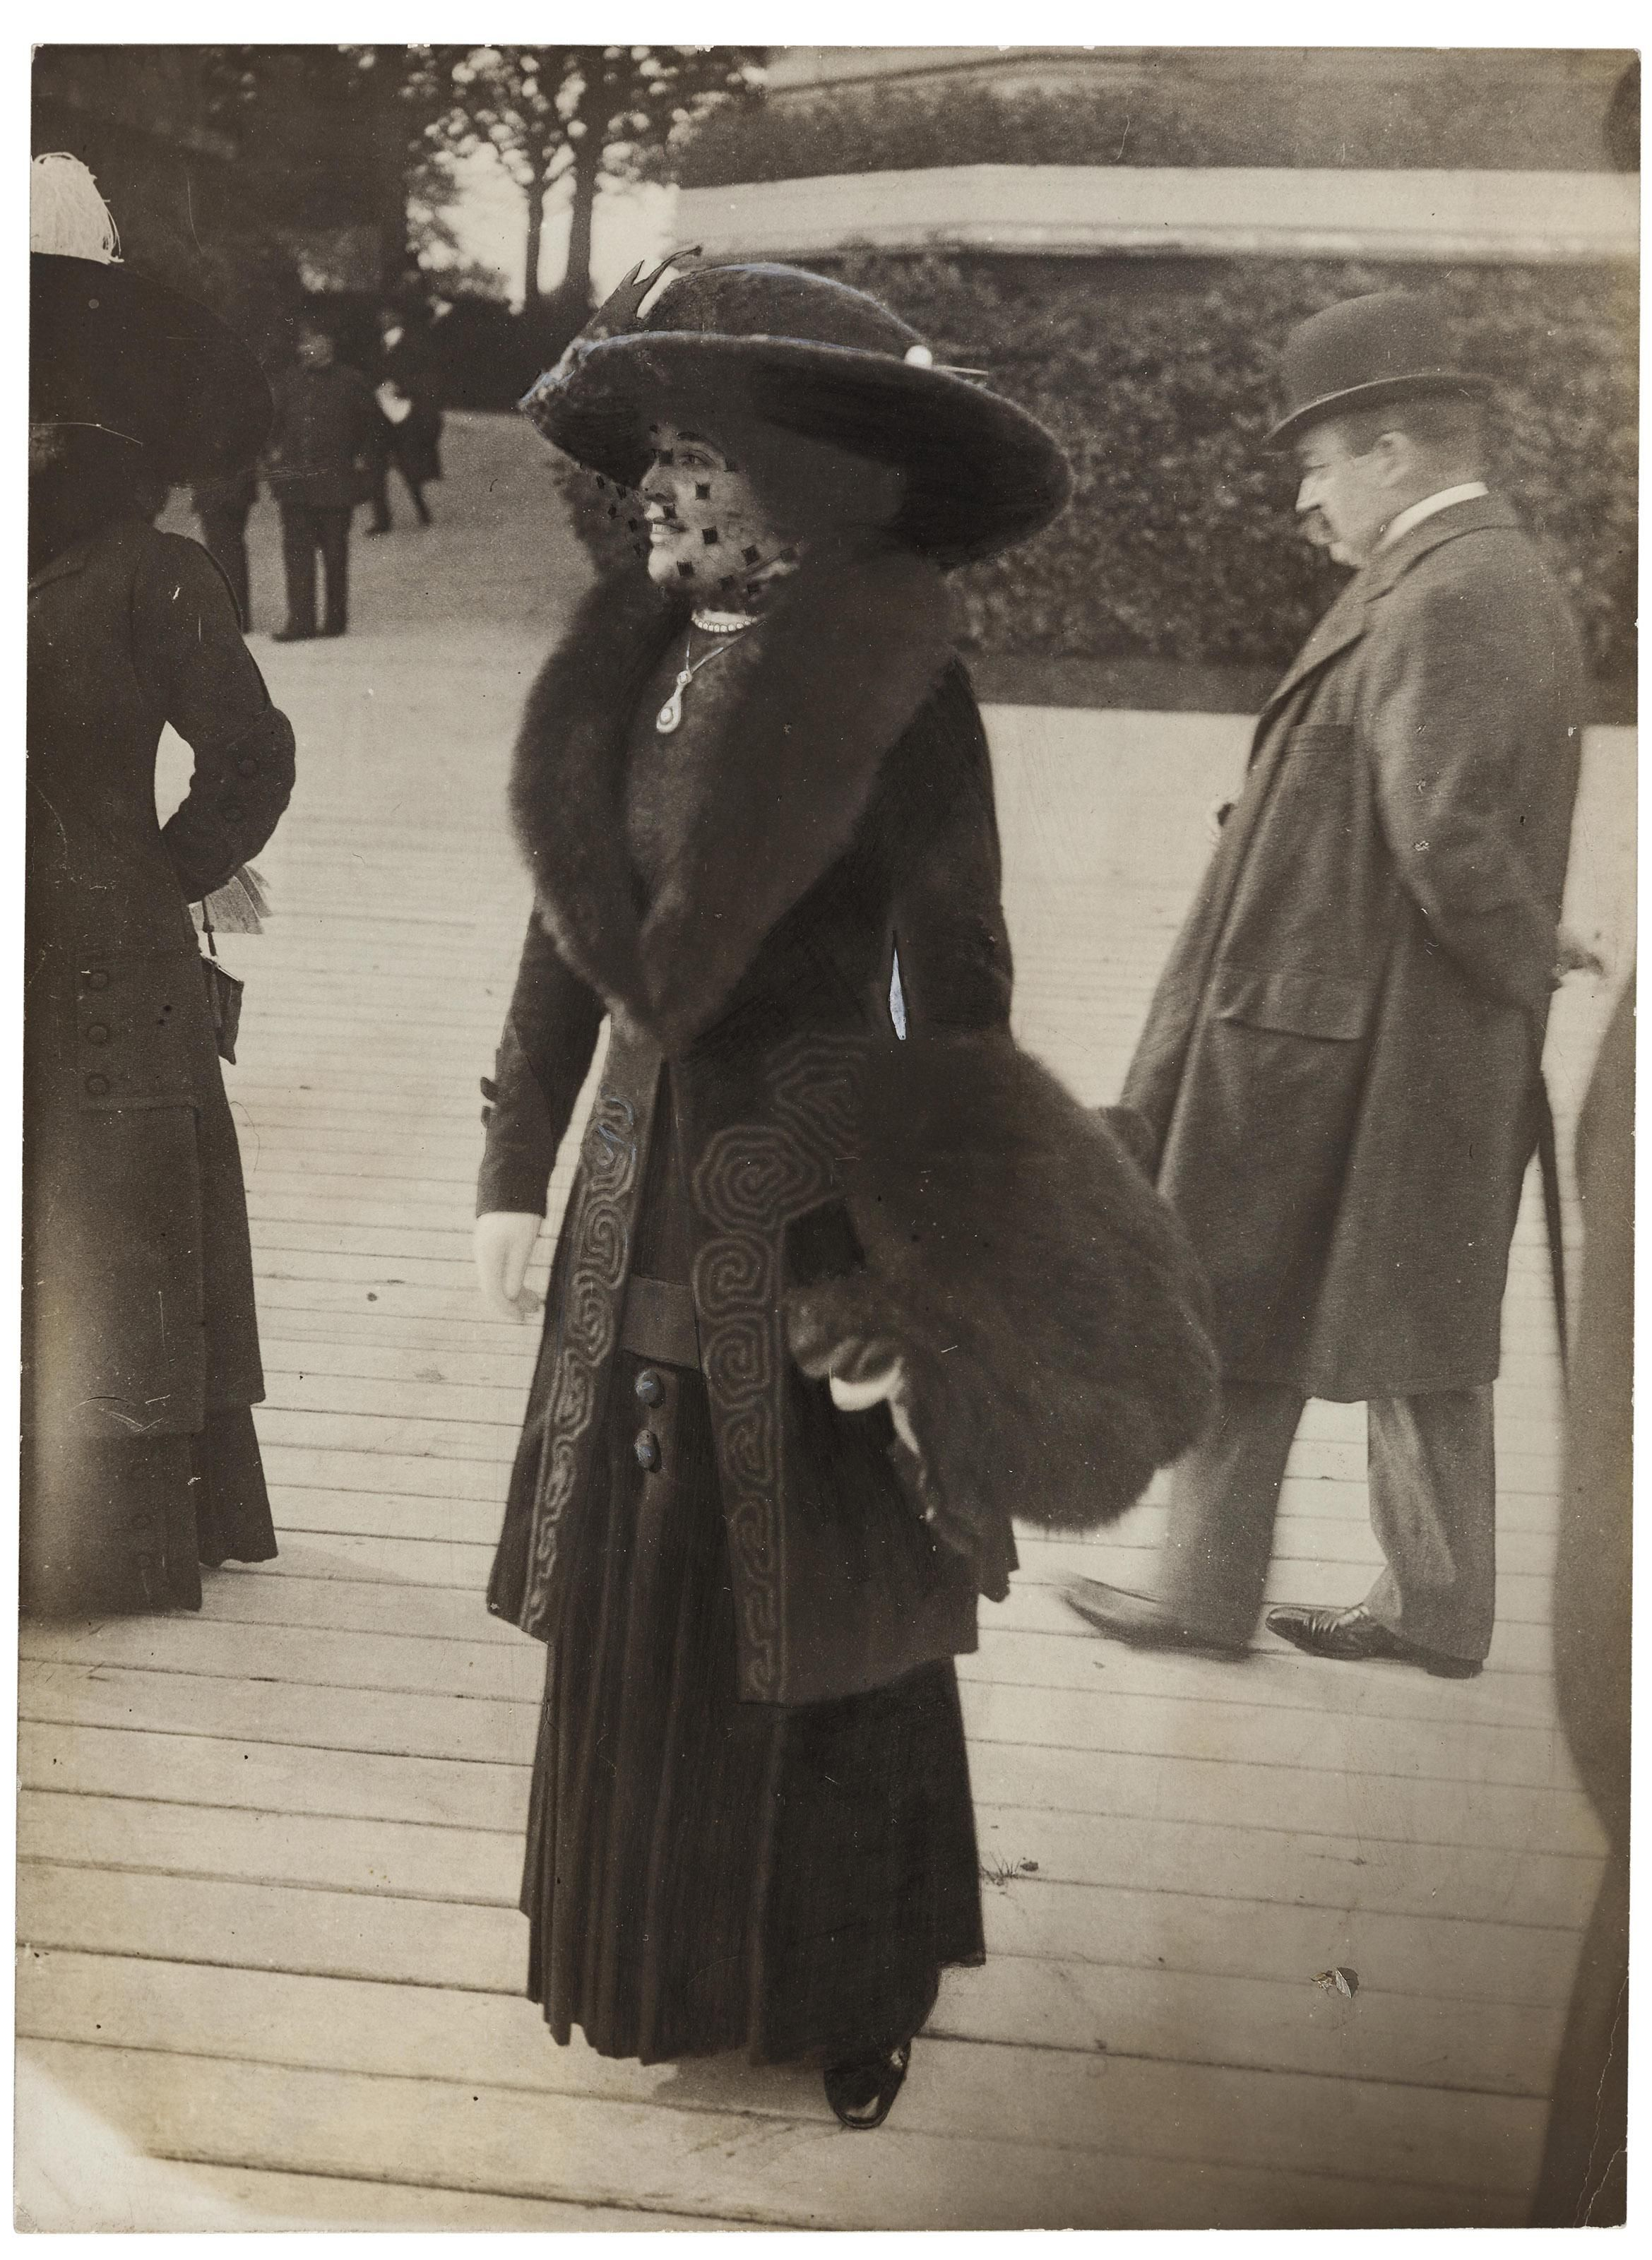 From The Series Belles Dames Du Bois De Boulogne 1910 1912 Belle Epoque Edwardian Fashion Vintage Photographs